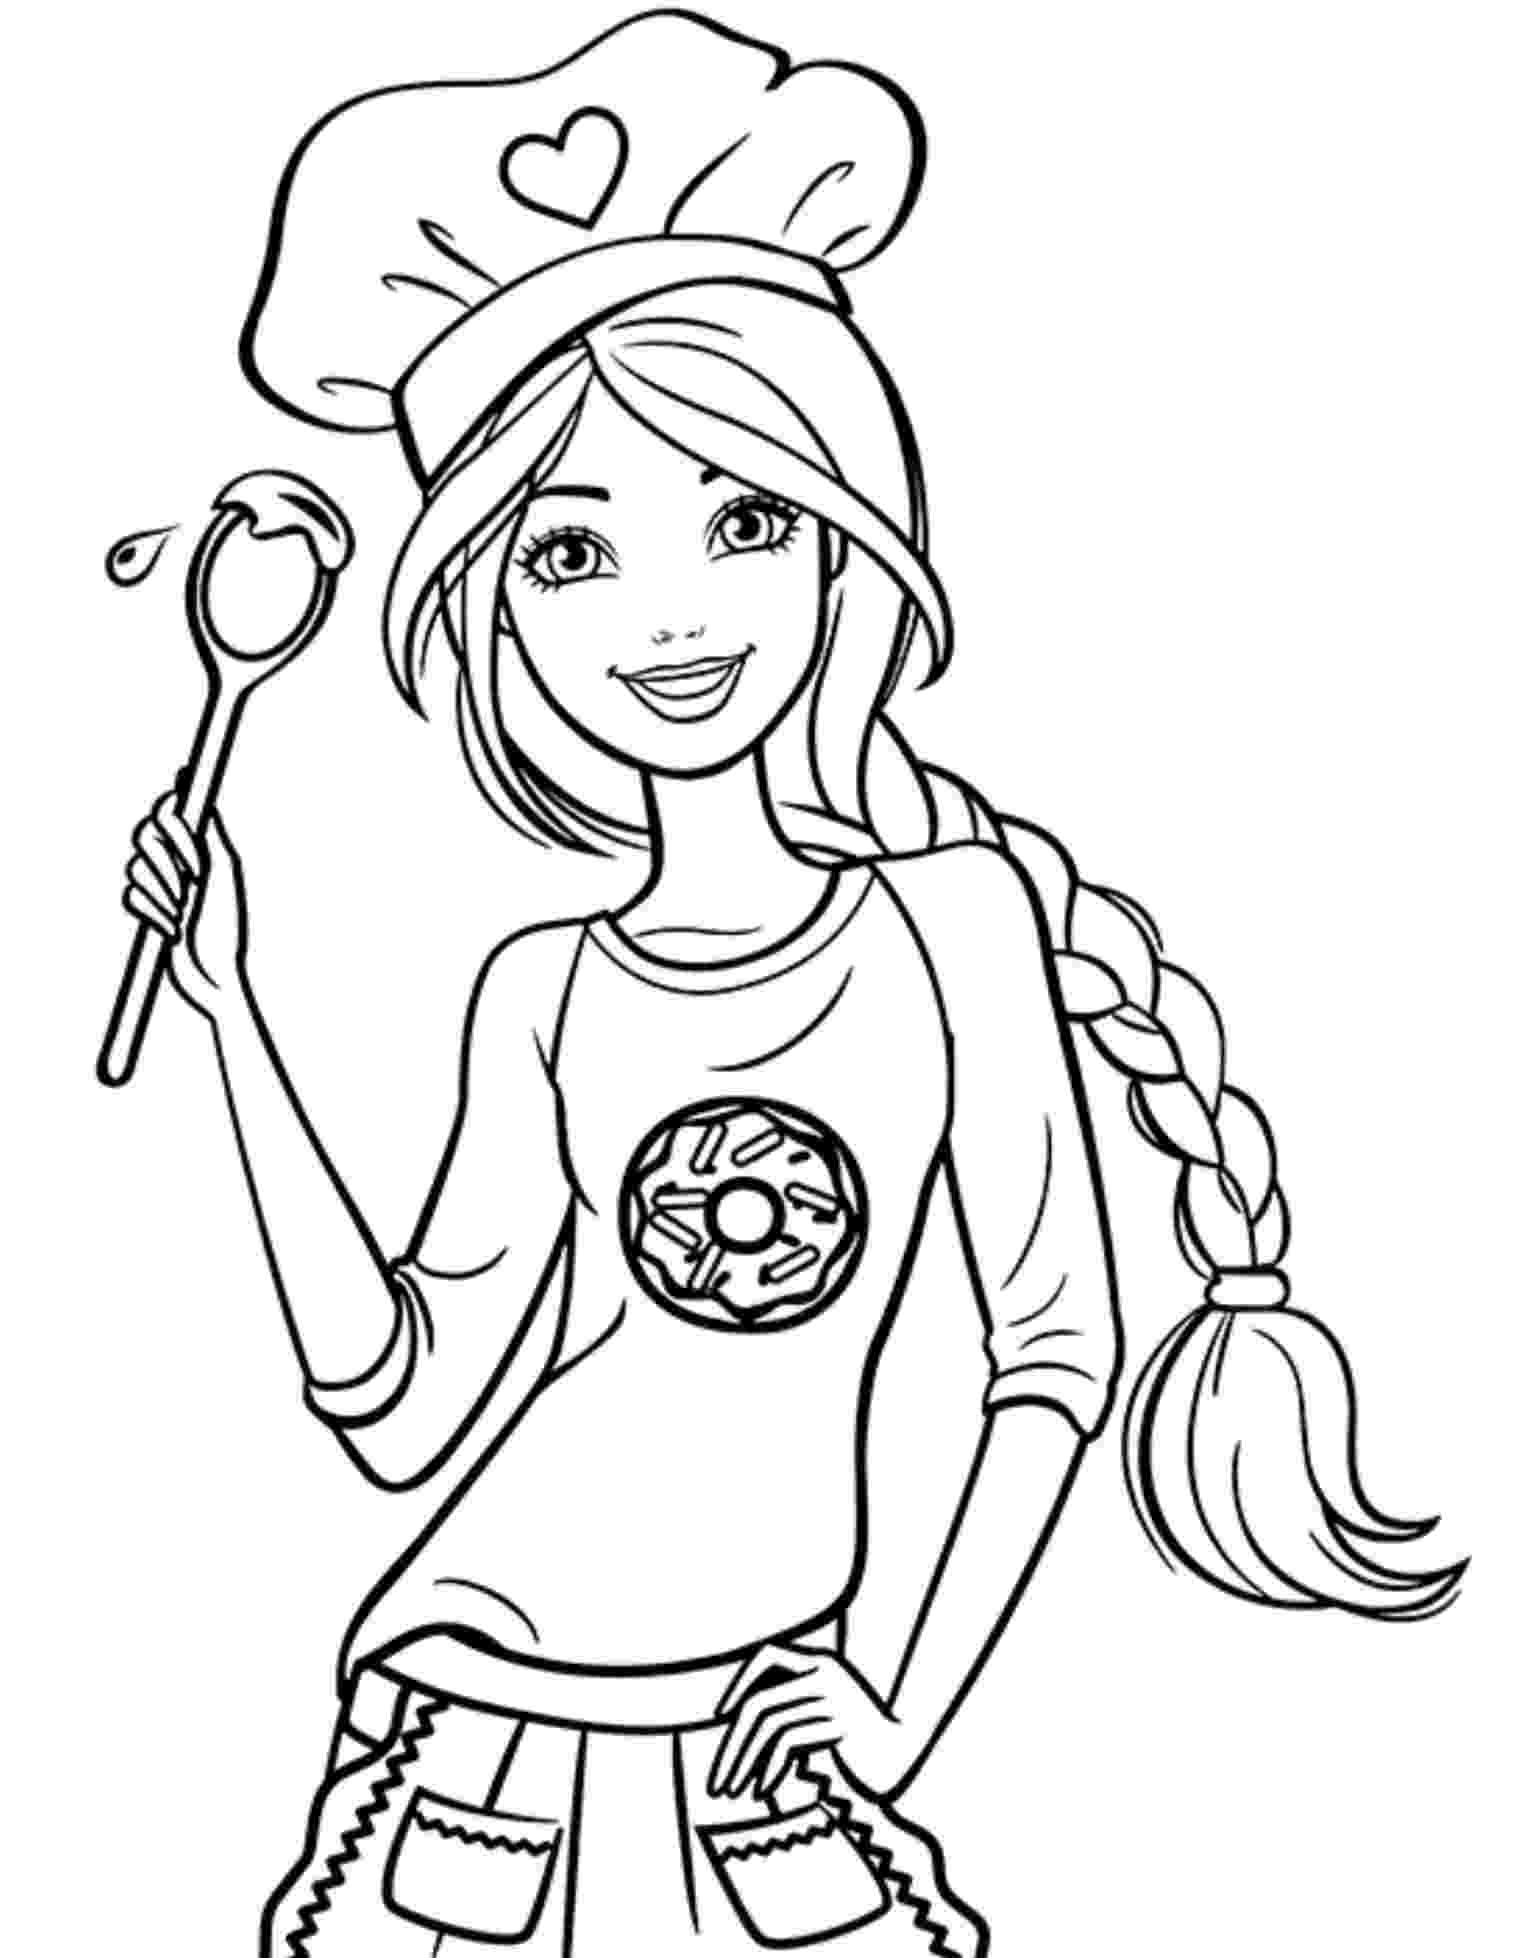 barbie color pages to print free coloring pages barbie coloring pages print pages color barbie to